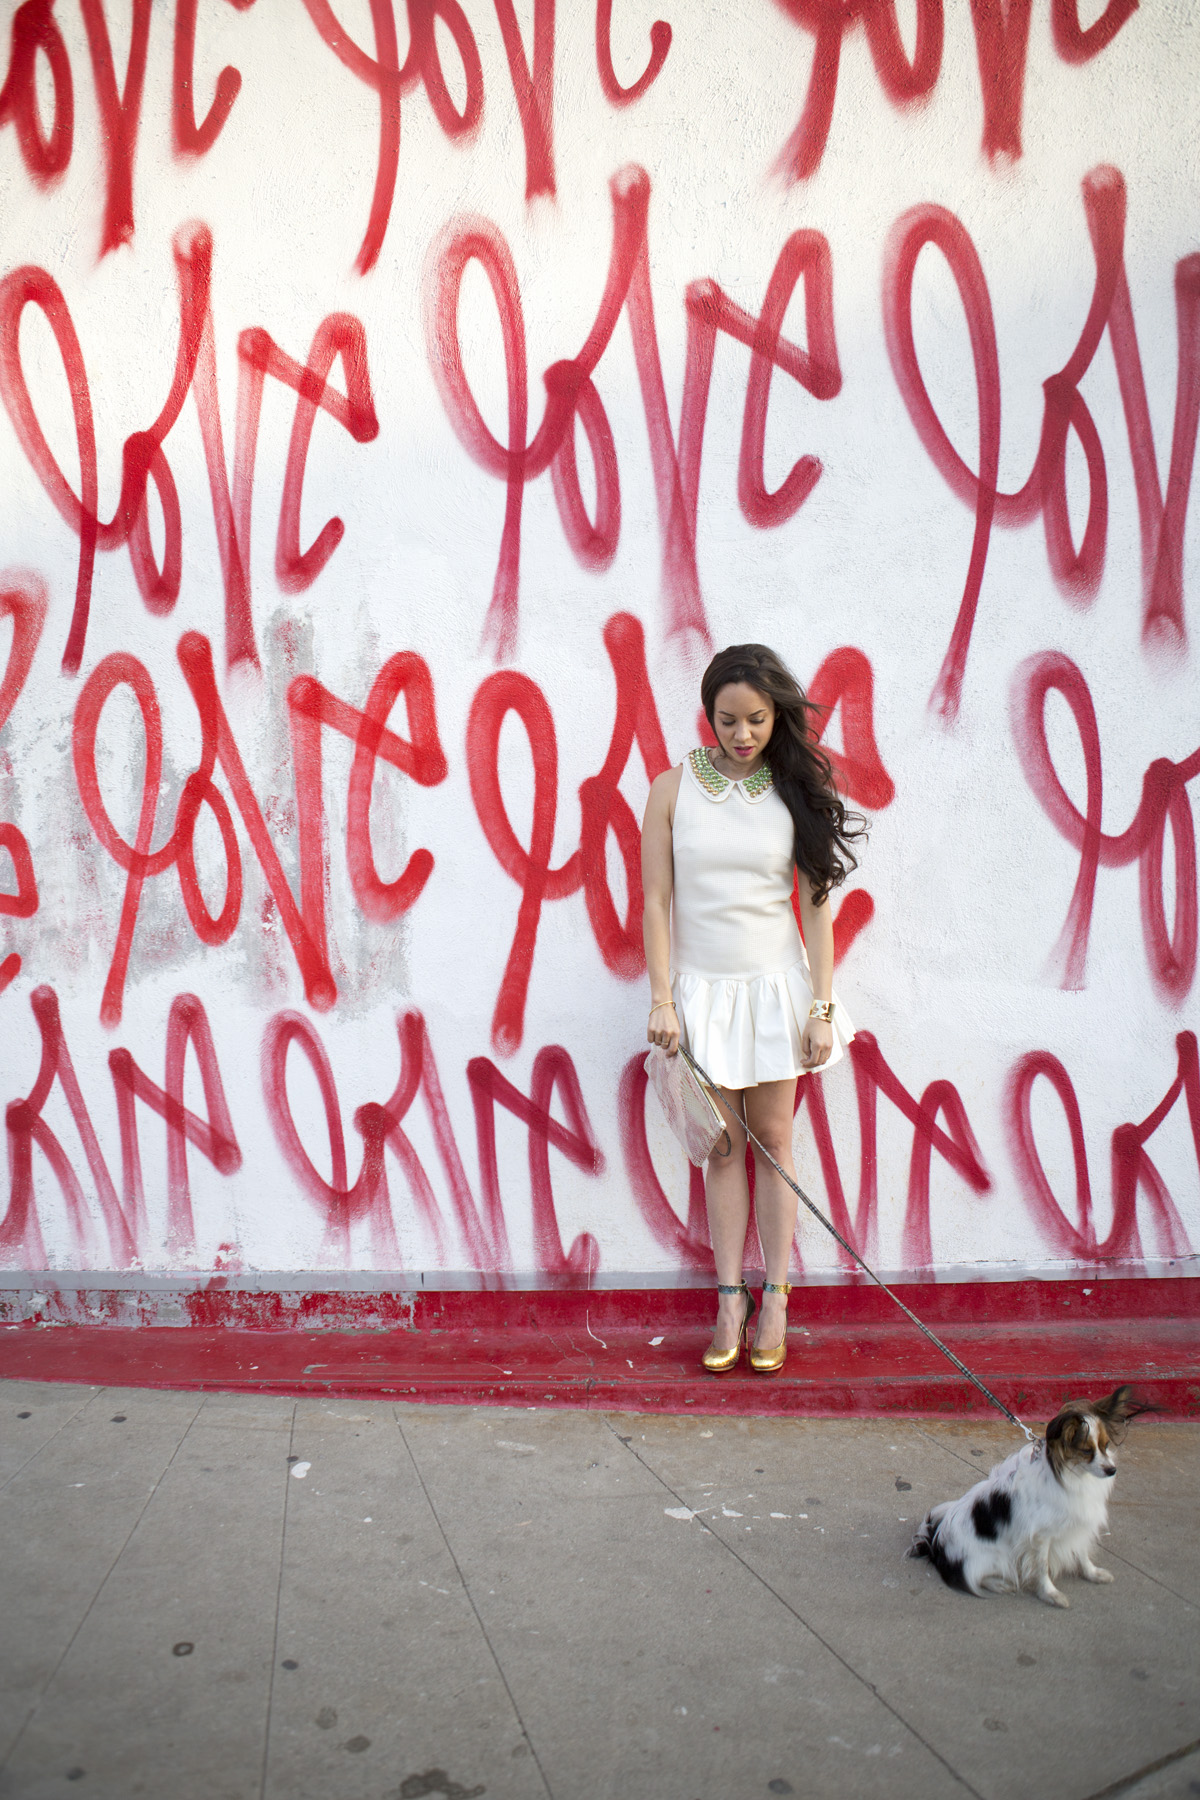 new years eve dress, love wall, camille newbern, ootd, ootn, the la survival guide, la survival guide, model los angeles, modeling los angeles, shopping la, shopping los angeles, drybar, drybar blowout, long hair blowout, blushington, enamel diction, enamel diction nail art, eurasian model, three floor, three floor dress, python heels, lanvin heels, clare vivier, clare vivier clutch, silver clutch, metallic heels, love wall culver city